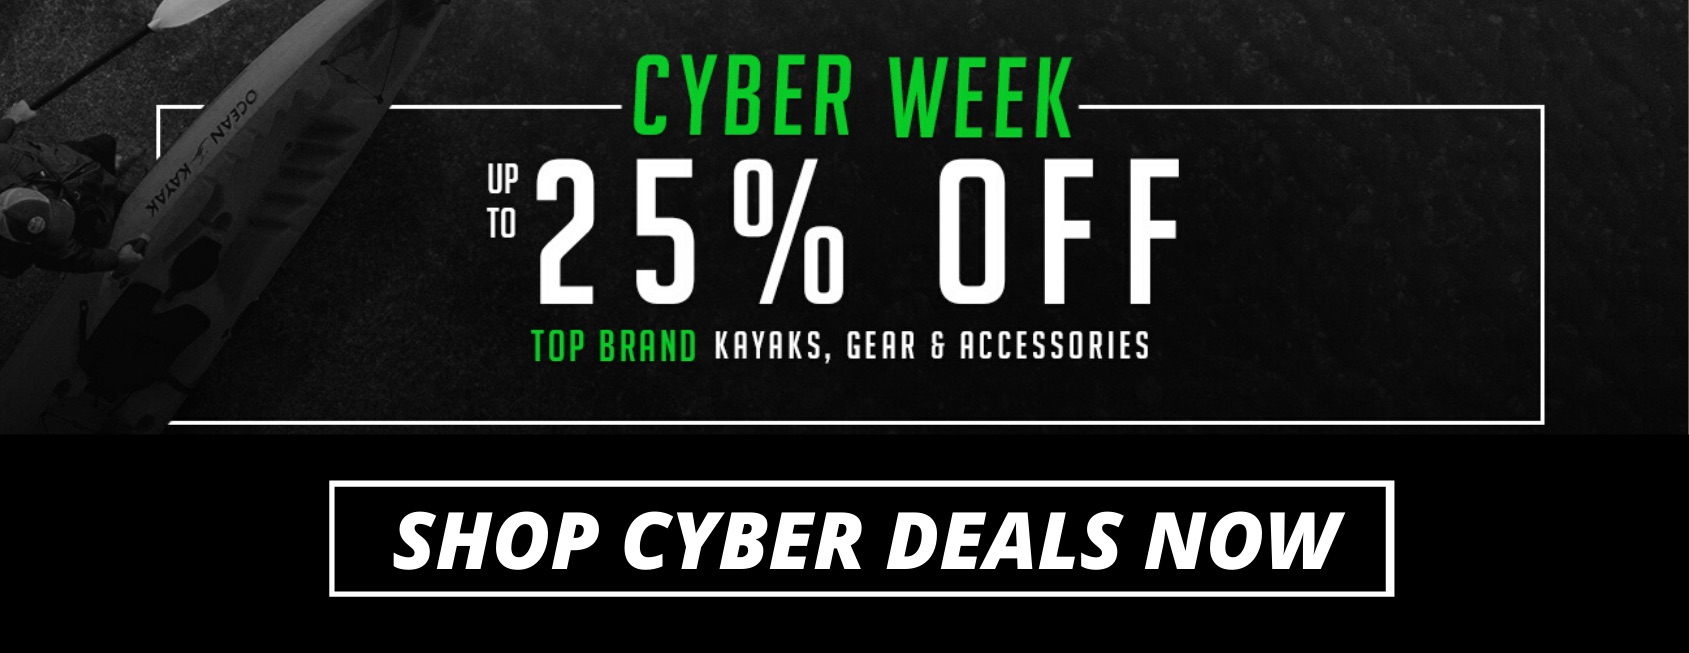 Cyber Week Up To 25% Off